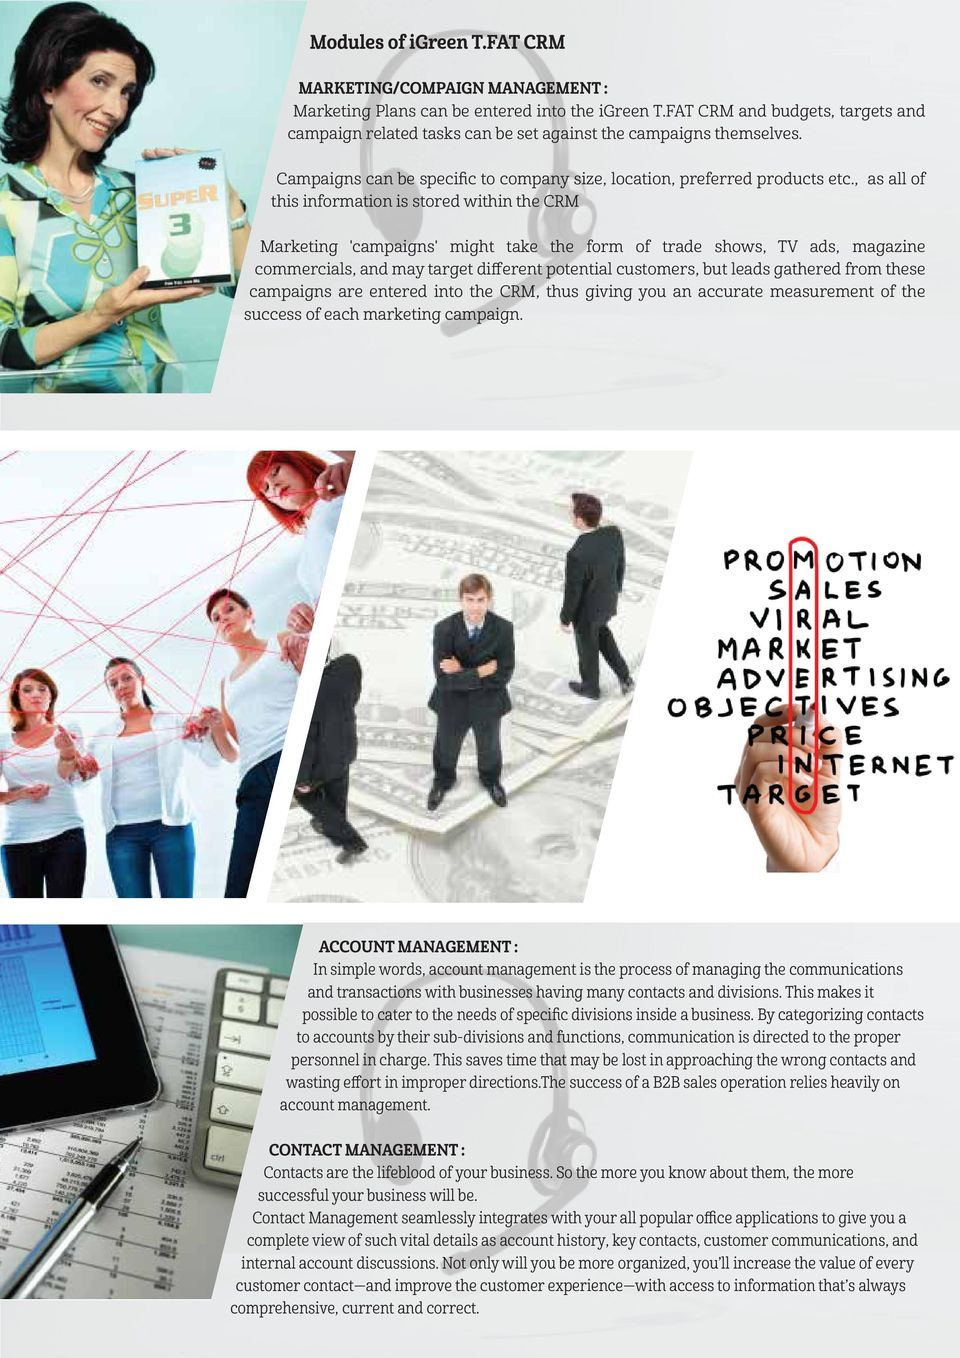 , as all of this information is stored within the CRM Marketing 'campaigns' might take the form of trade shows, TV ads, magazine commercials, and may target different potential customers, but leads